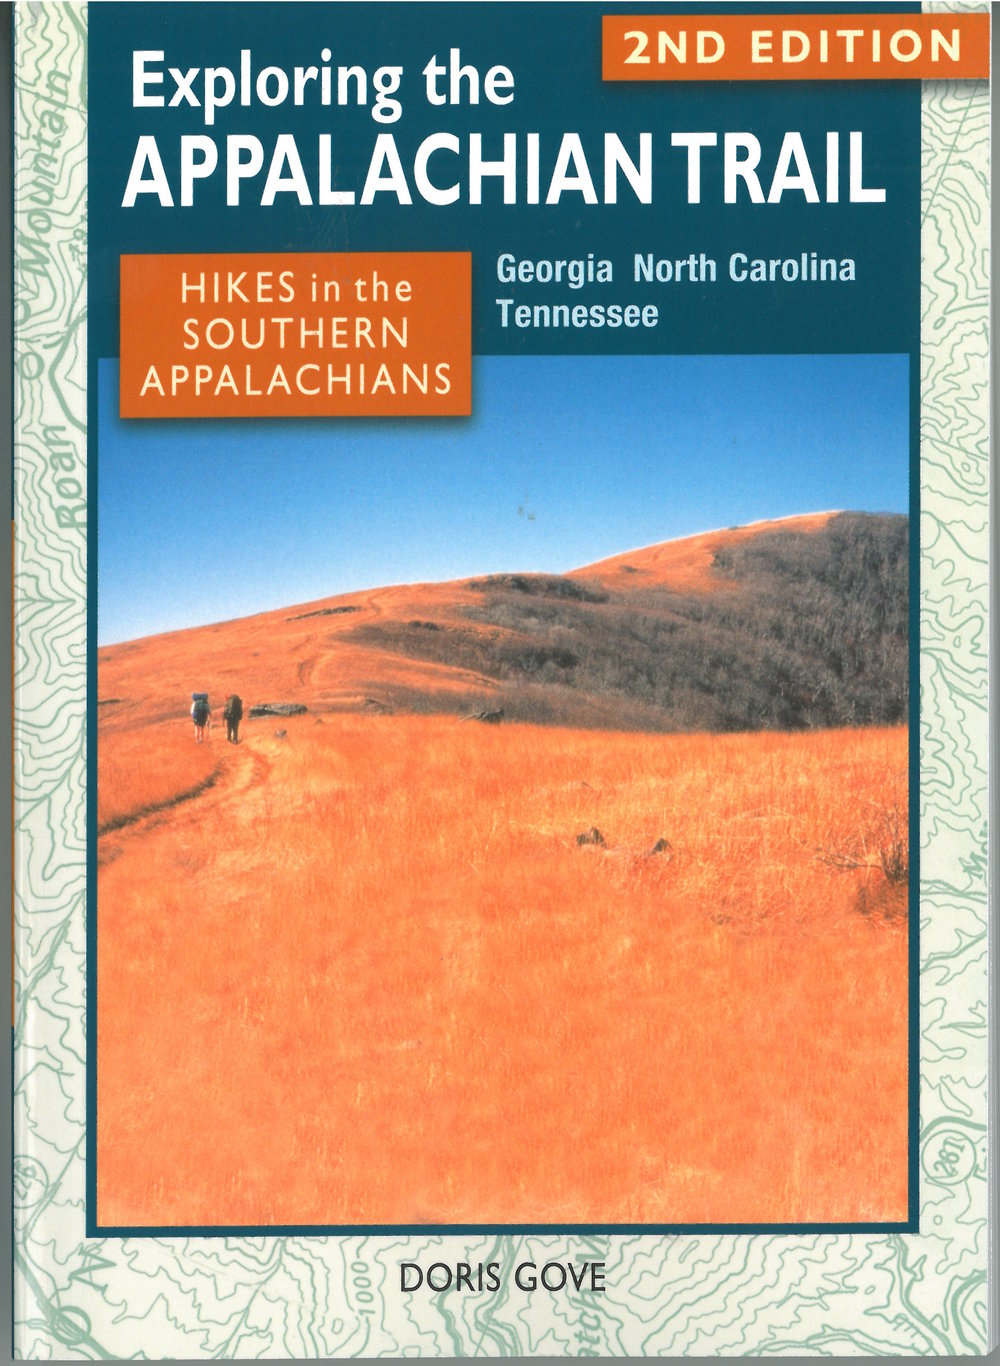 App Trail Cover 1 (SOUTHERN APPS).jpg